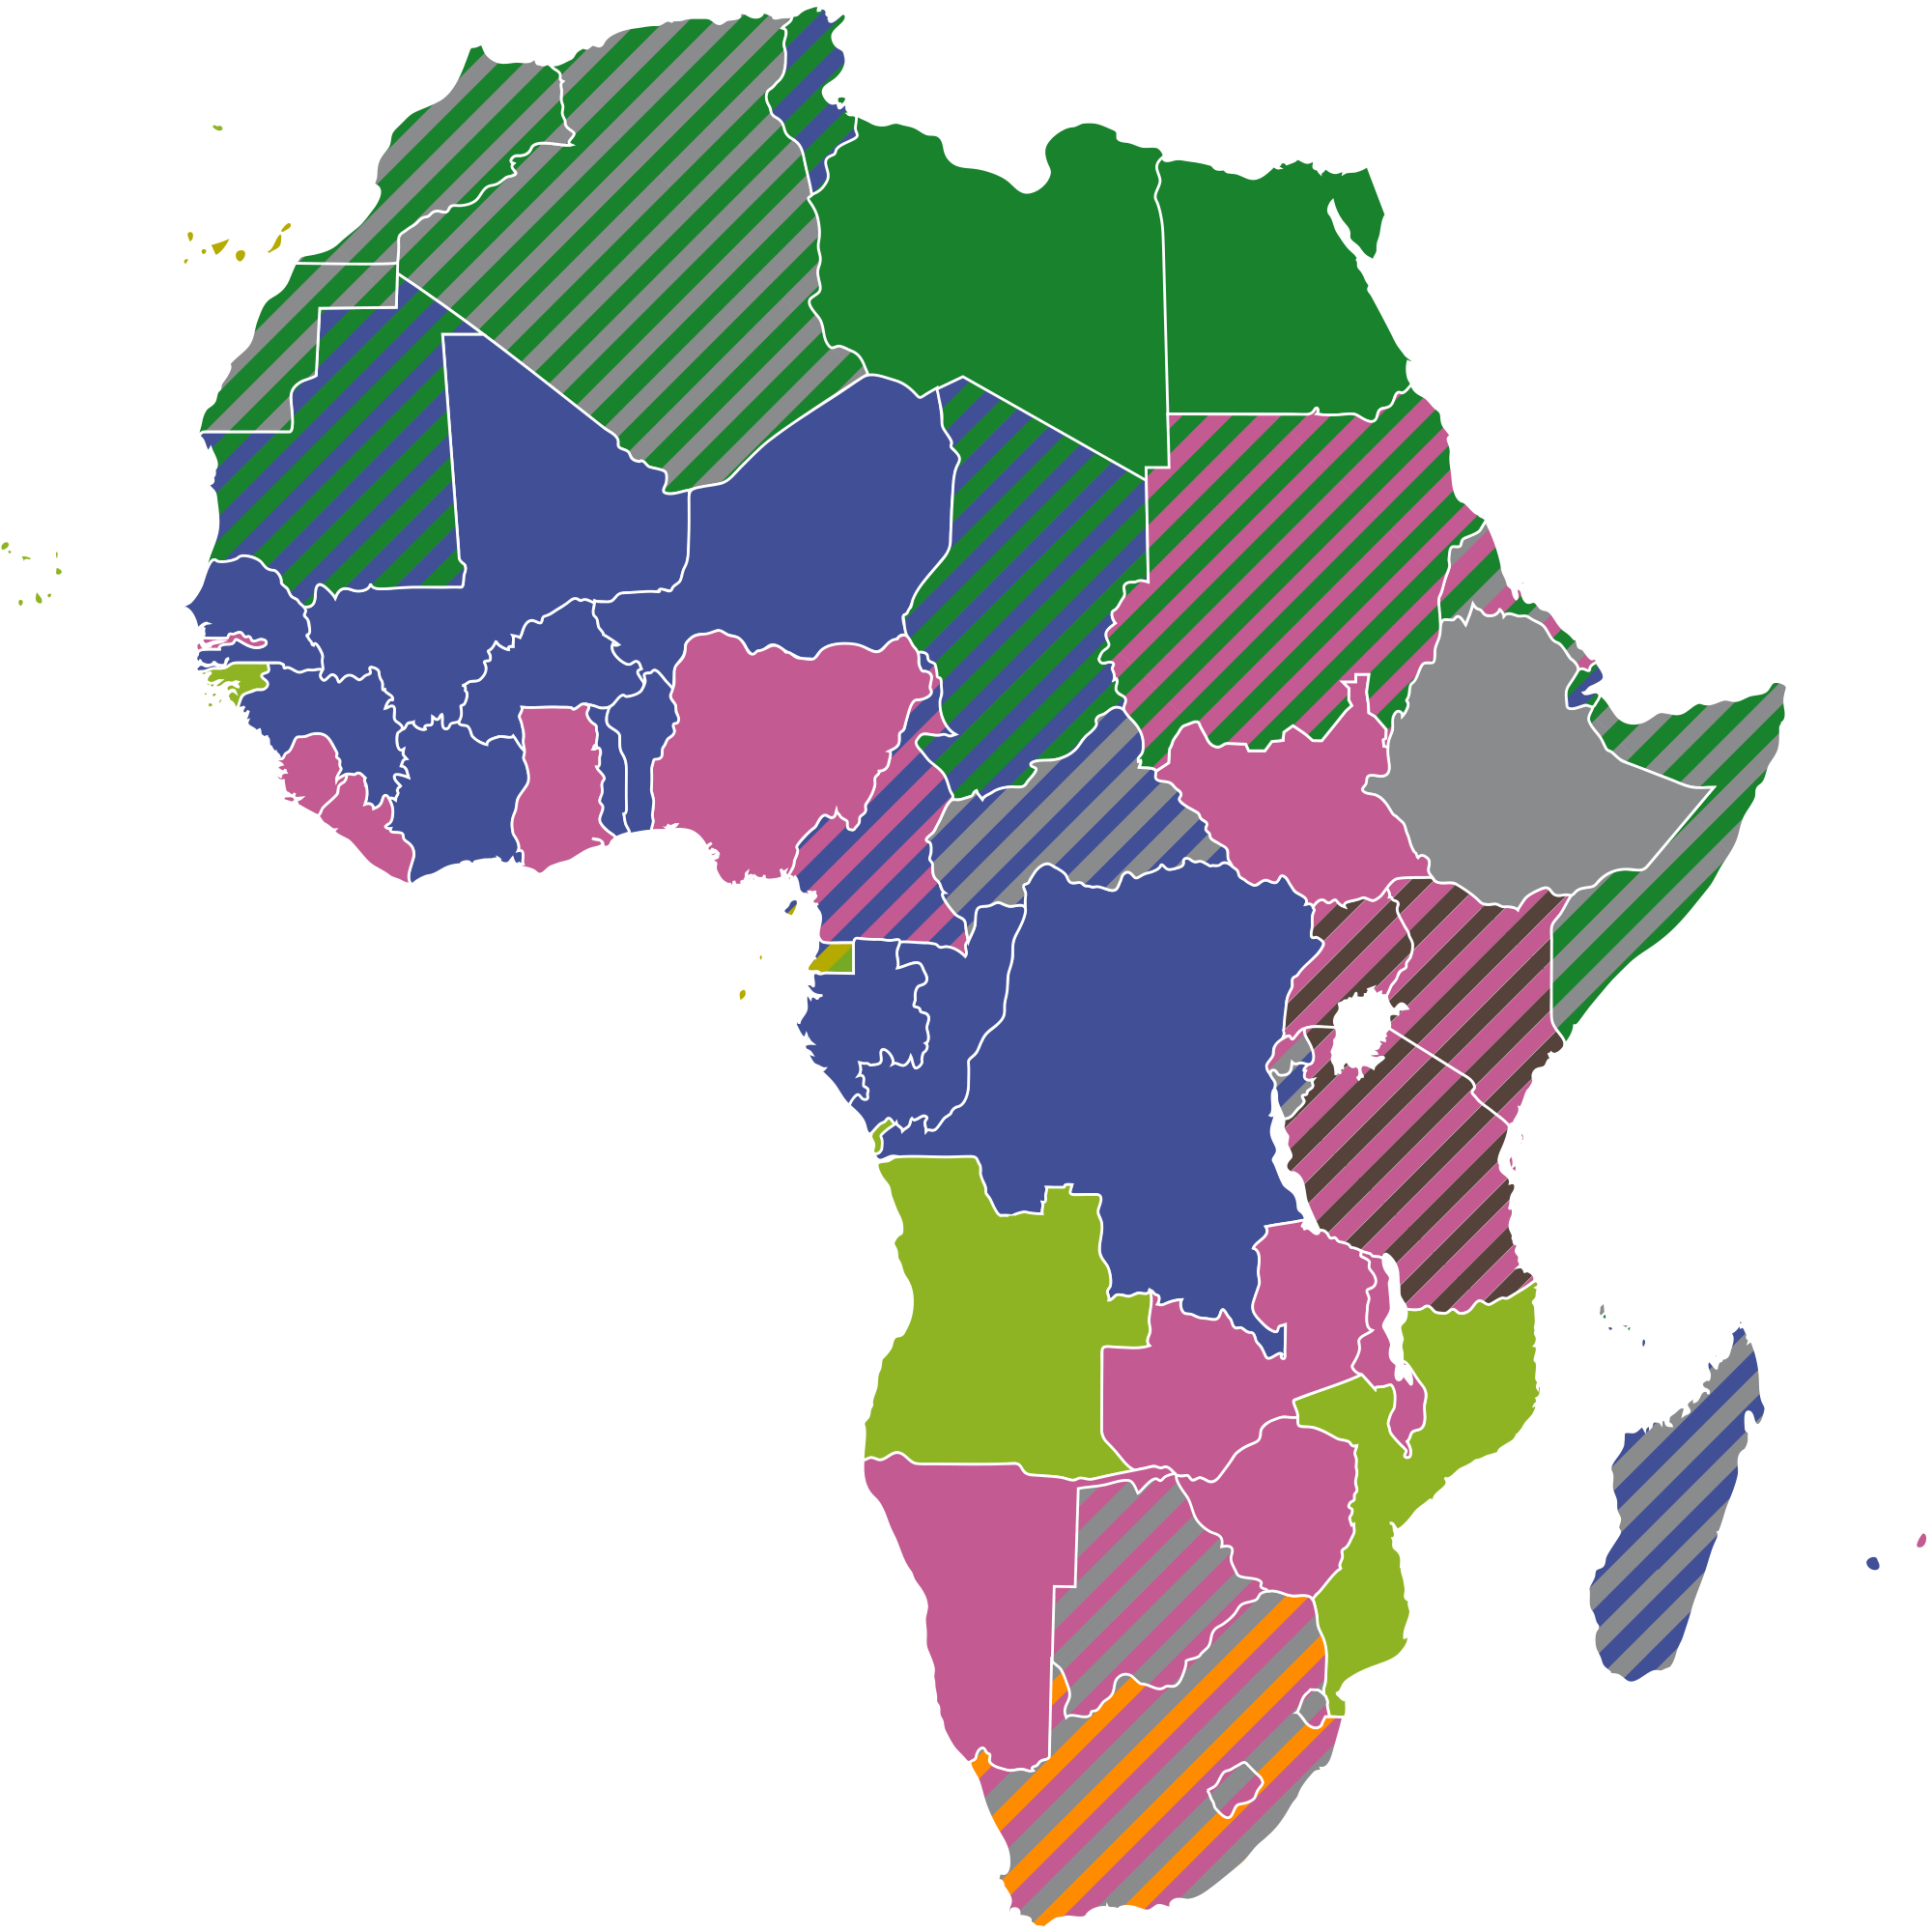 File official languagesmap wikimedia. Africa png image banner royalty free